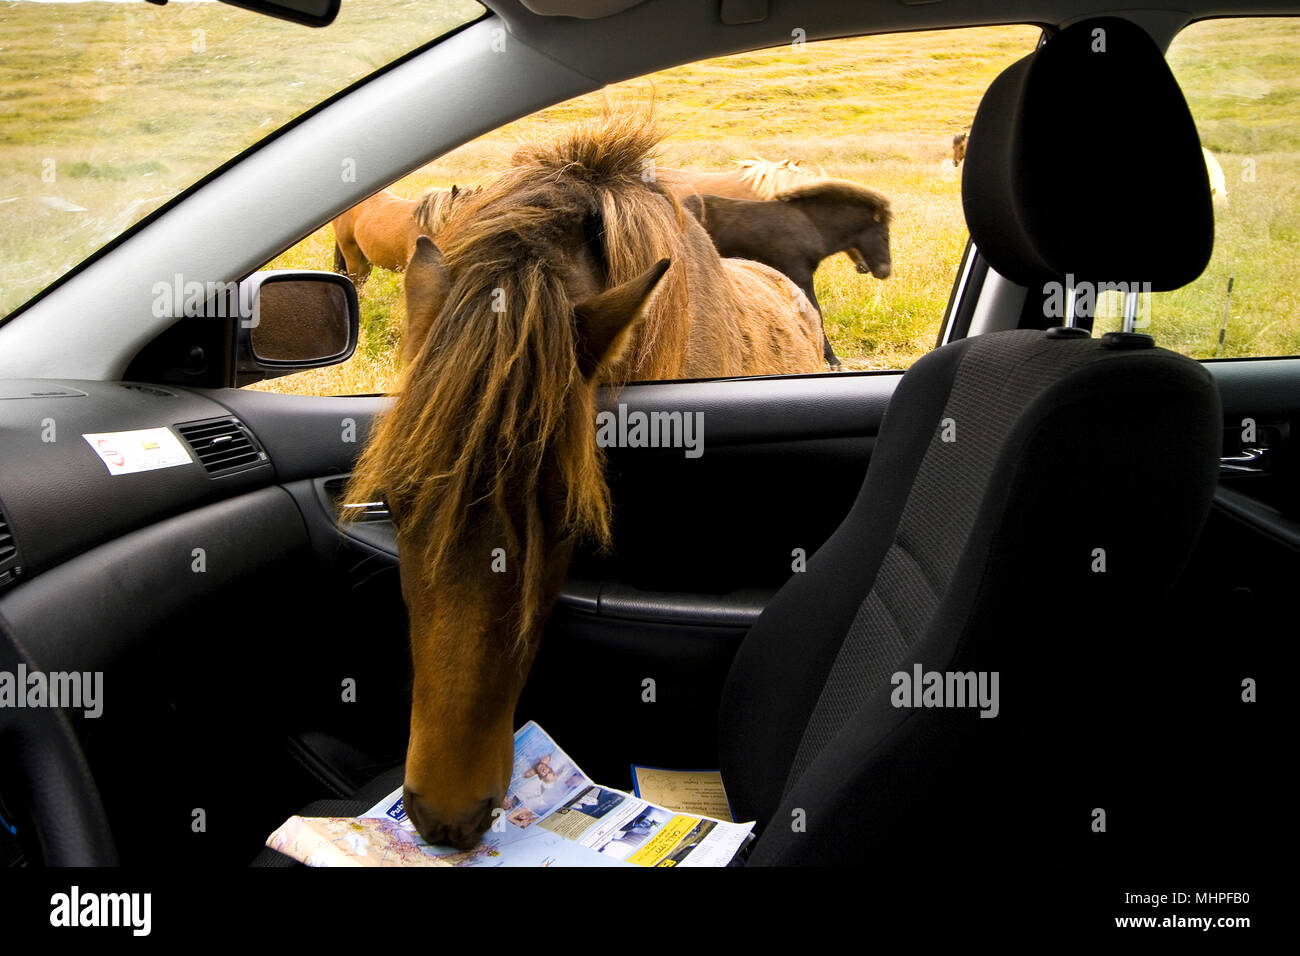 Horse attack car. Iceland - Stock Image